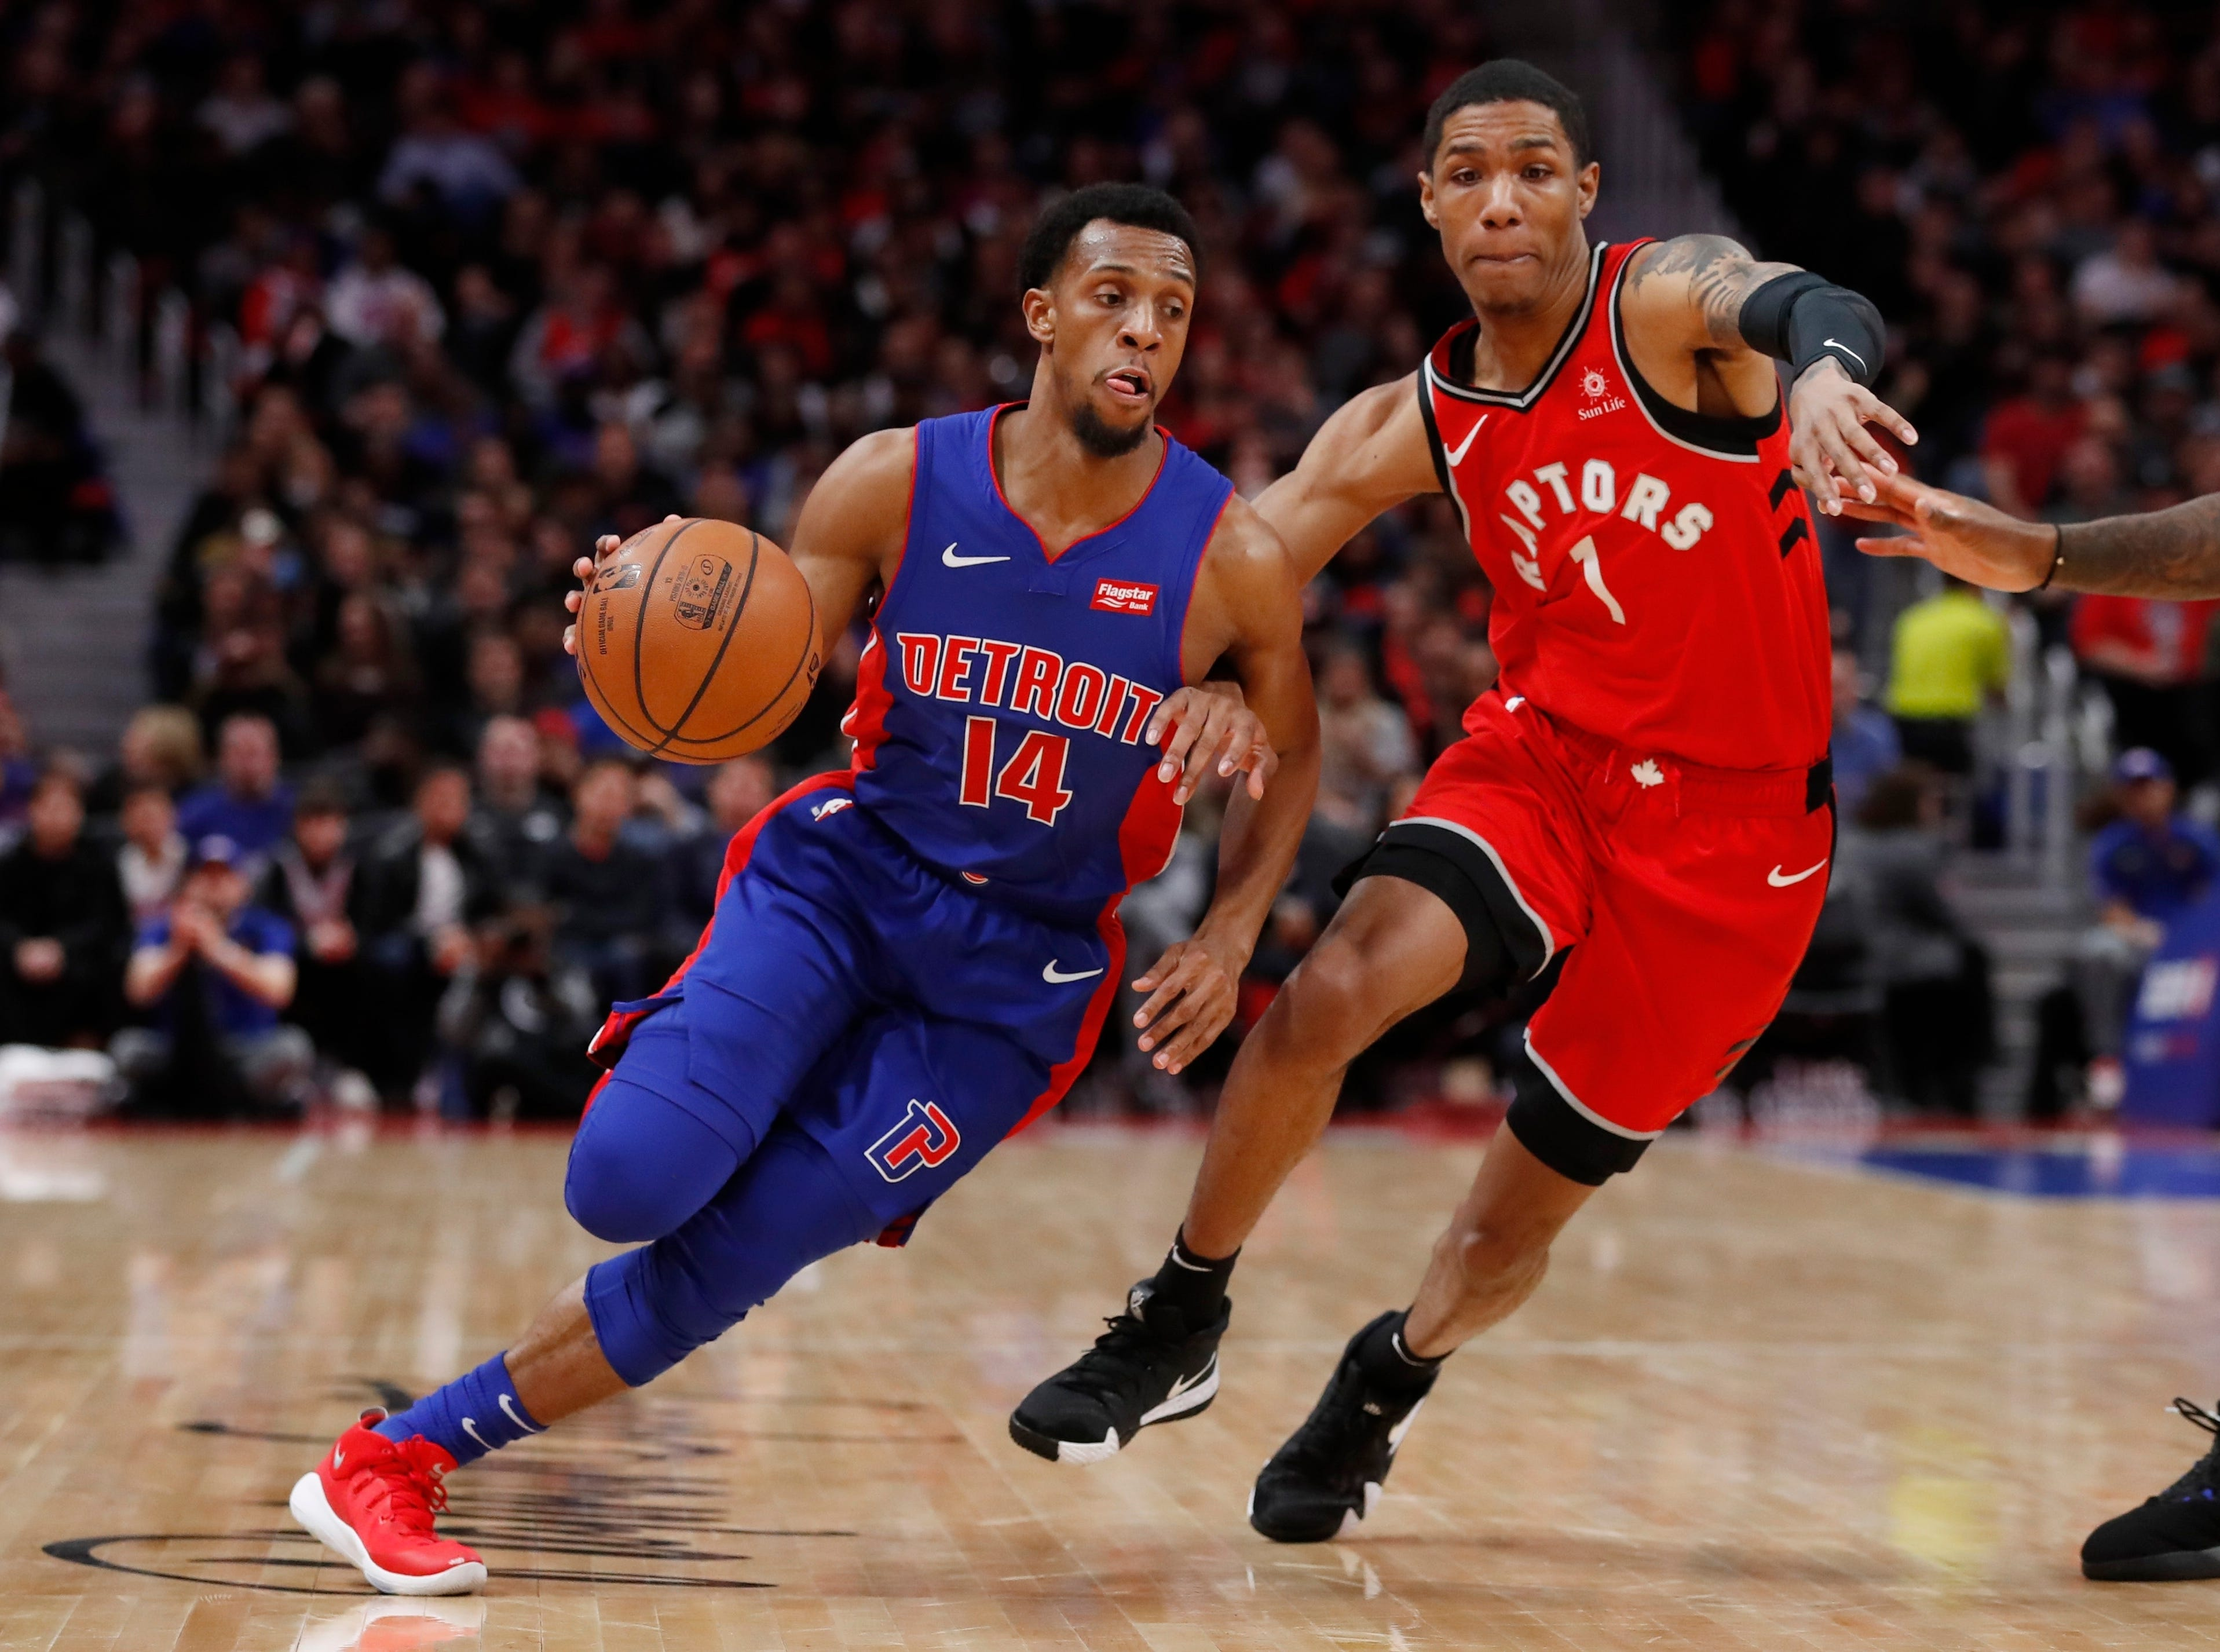 Detroit Pistons guard Ish Smith (14) drives against Toronto Raptors guard Patrick McCaw (1) during the first half.